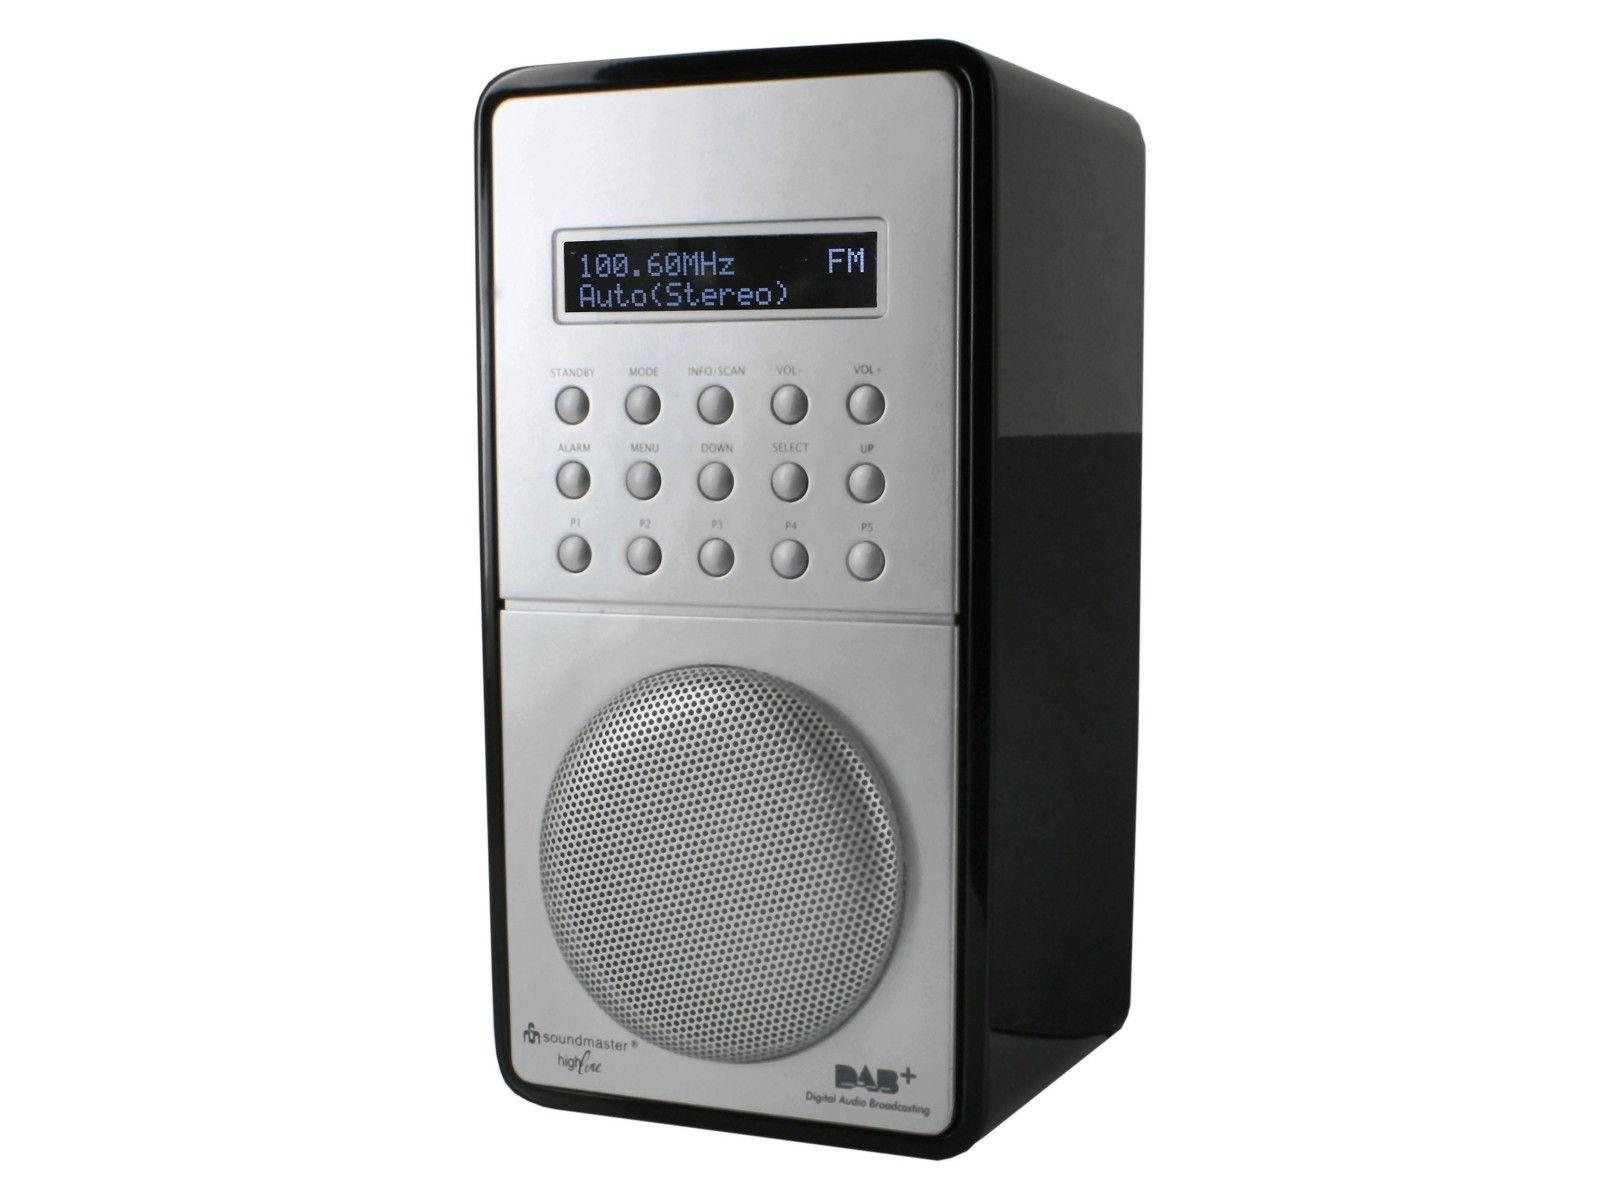 front view of soundmaster DAB100 Rechargeable FM / DAB Radio in black